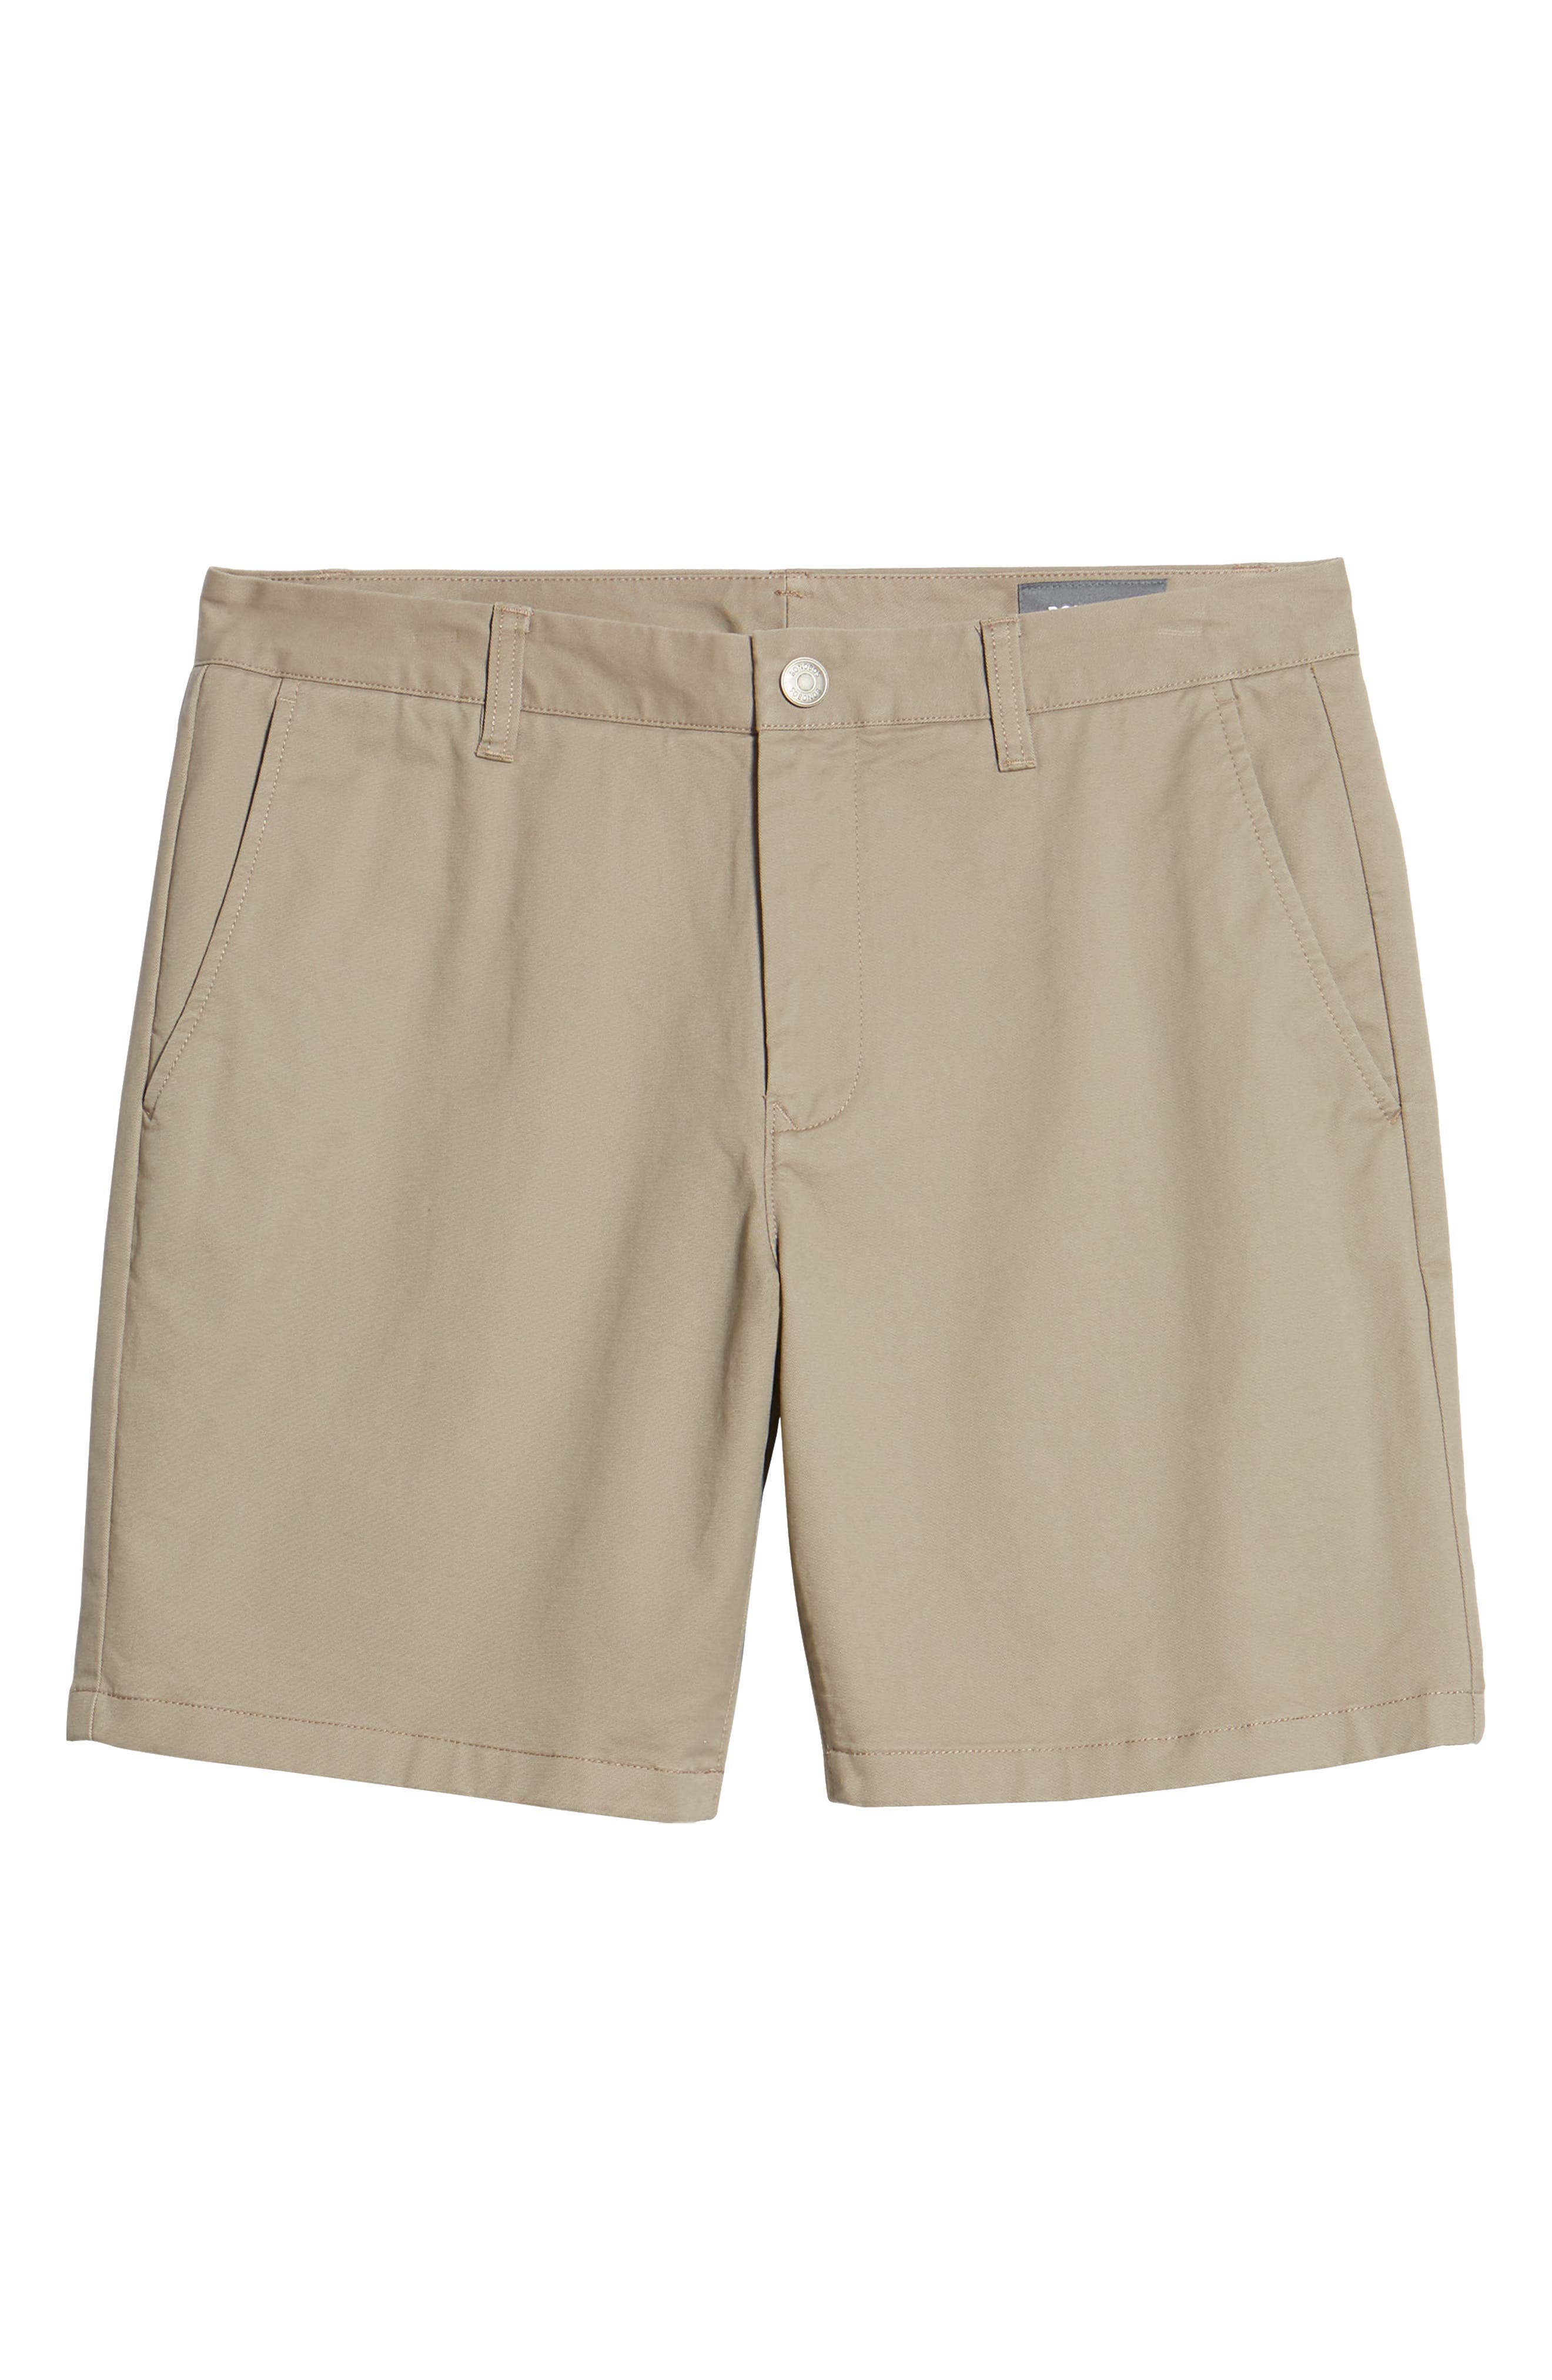 Stretch Chino 7-Inch Shorts,                             Alternate thumbnail 66, color,